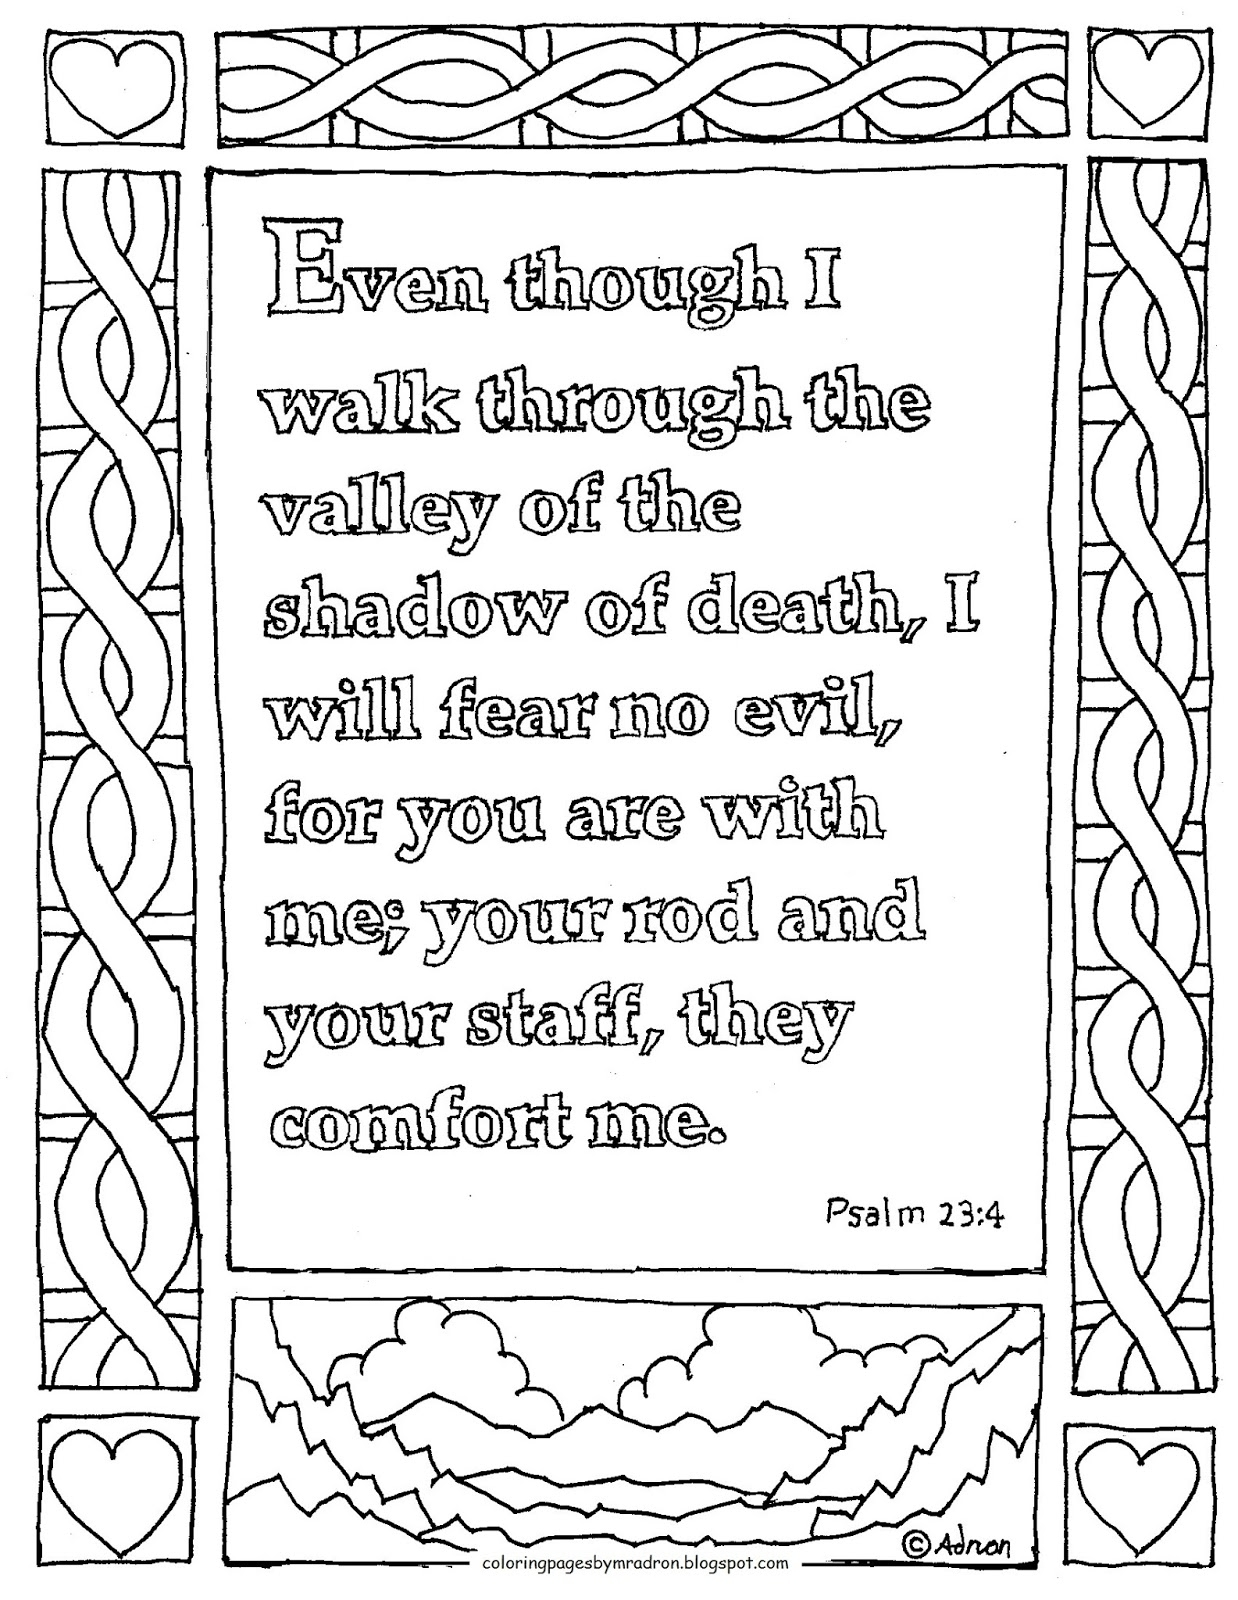 psalm 23 coloring page - printable coloring page psalm 234